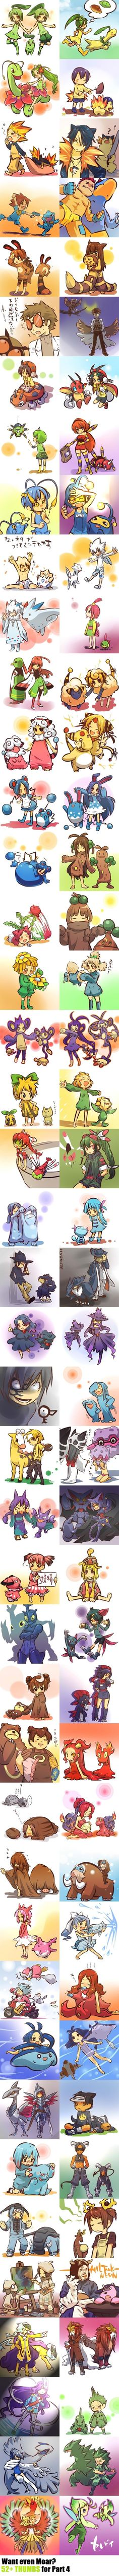 Pokémon evolving with their trainers... ADORABLE! I had my own idea similar to this for Halloween someday, with a cosplay-like thing based off one of my favorite Pokémon. I had Dratini, Riolu, Dragonite, Lugia or MewTwo in mind. :)